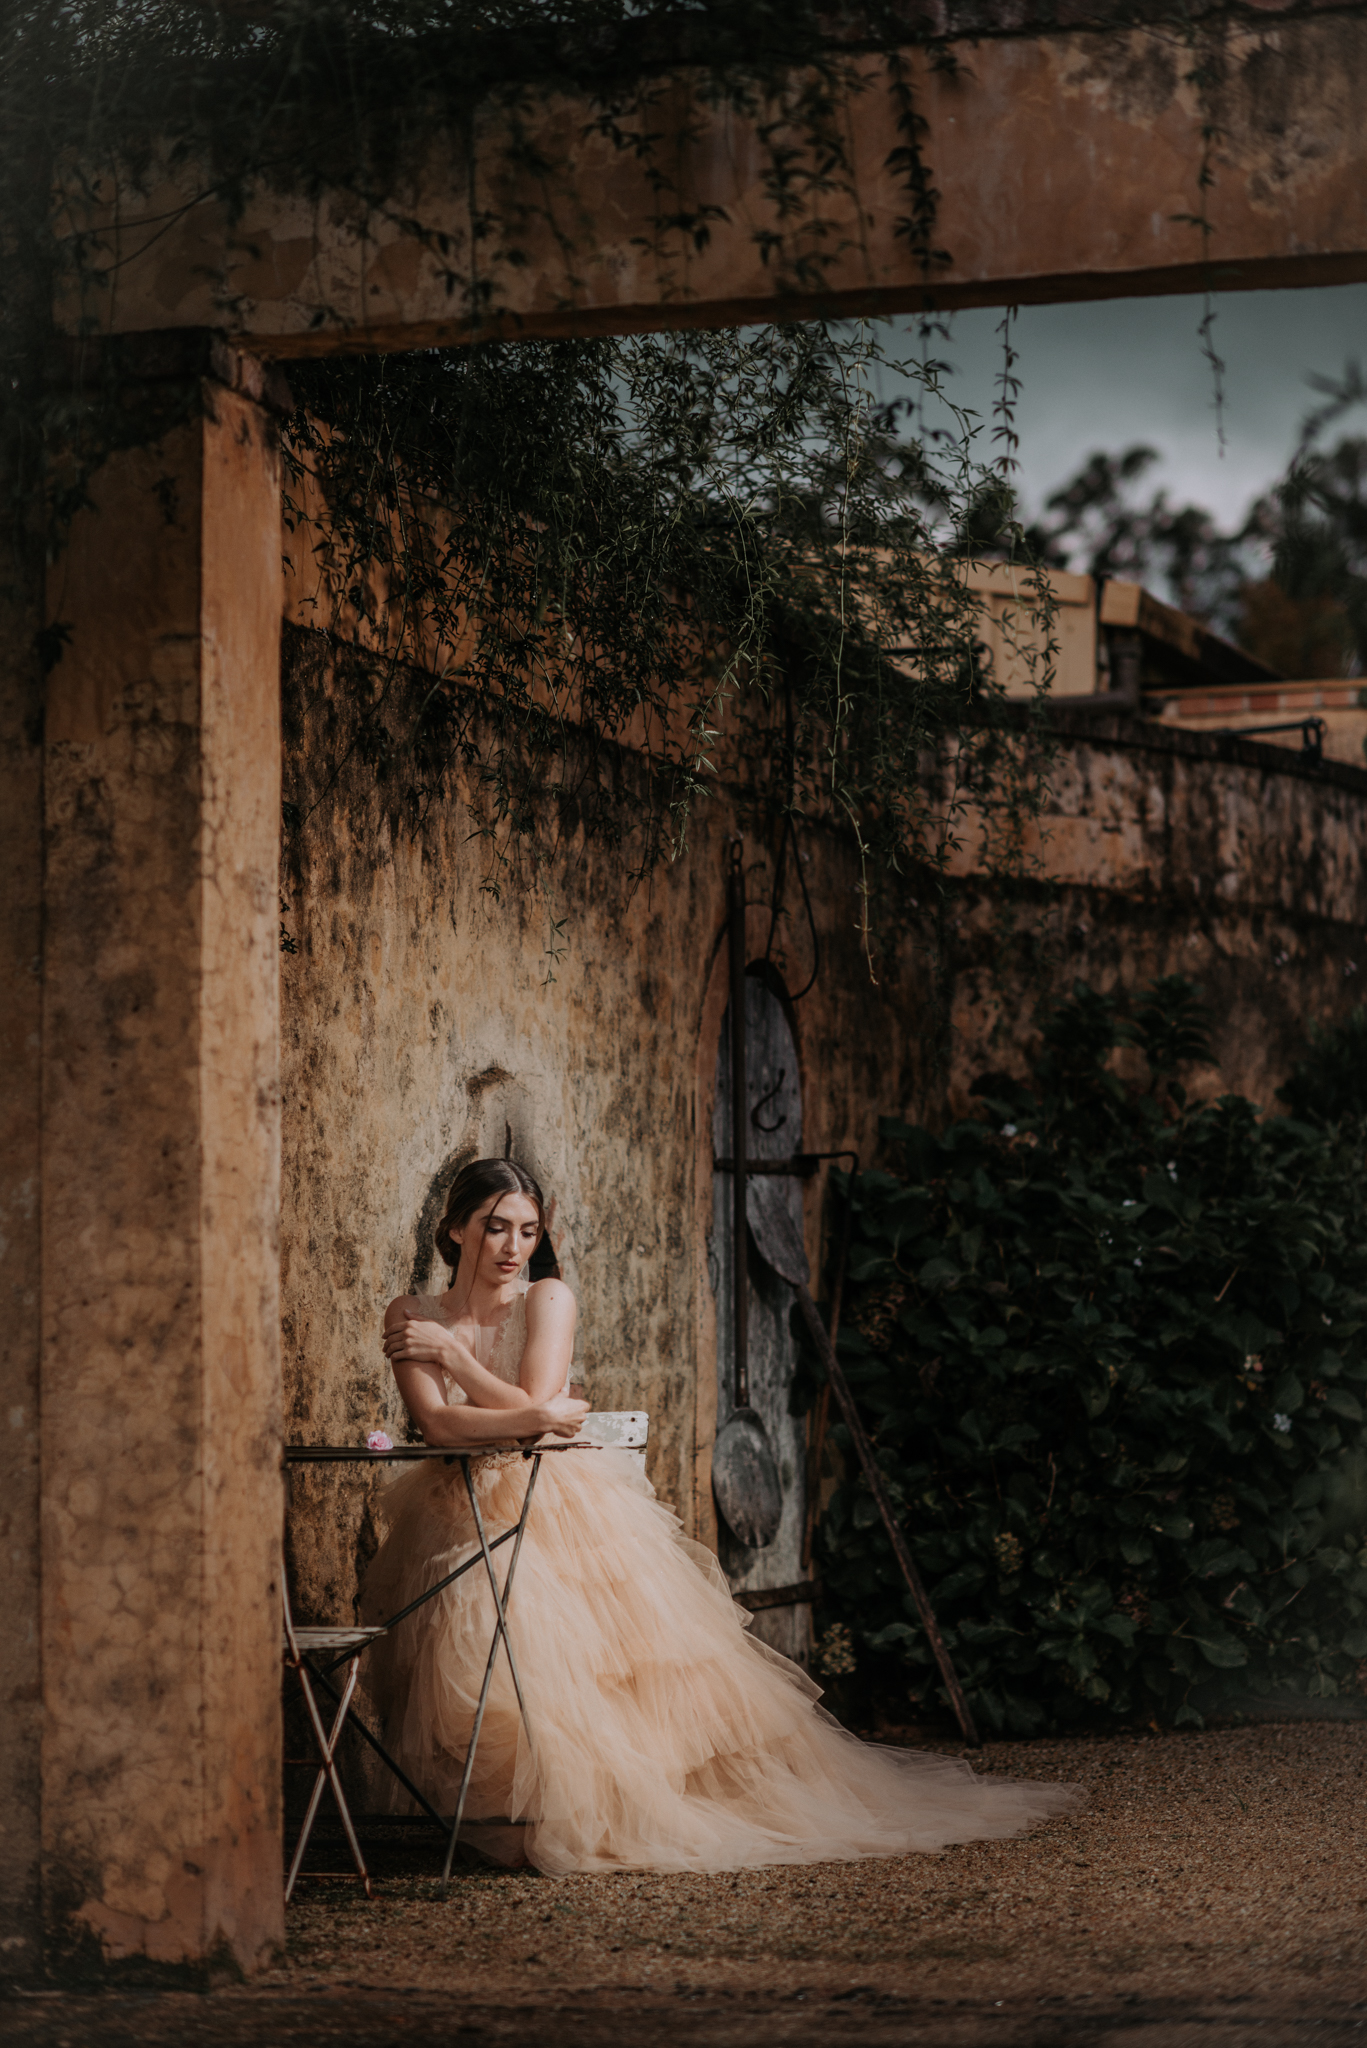 Lovelenscapes Photography X Ulyana Aster Bridal • Les Deux Belettes • Leigh McCoy • Bloodwood Botanica • Alena Iano • Alisa Rudnev • Demi Groot • Jessie Lockley • Maddison Ruby • 157.jpg